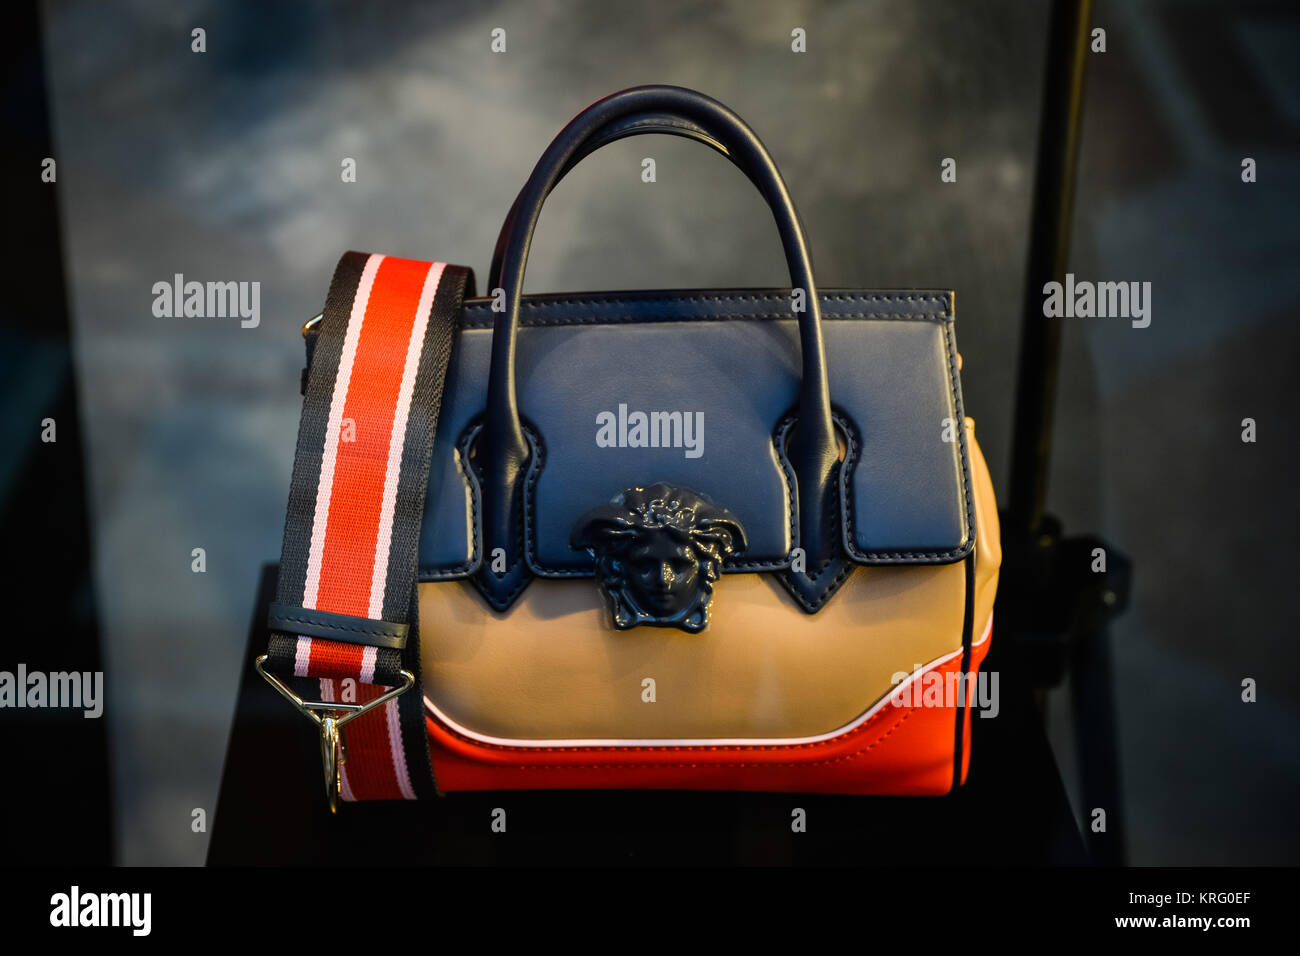 452f4892c236 Stock photo milan italy september versace bag in a store in milan jpg  1300x956 Leather versace